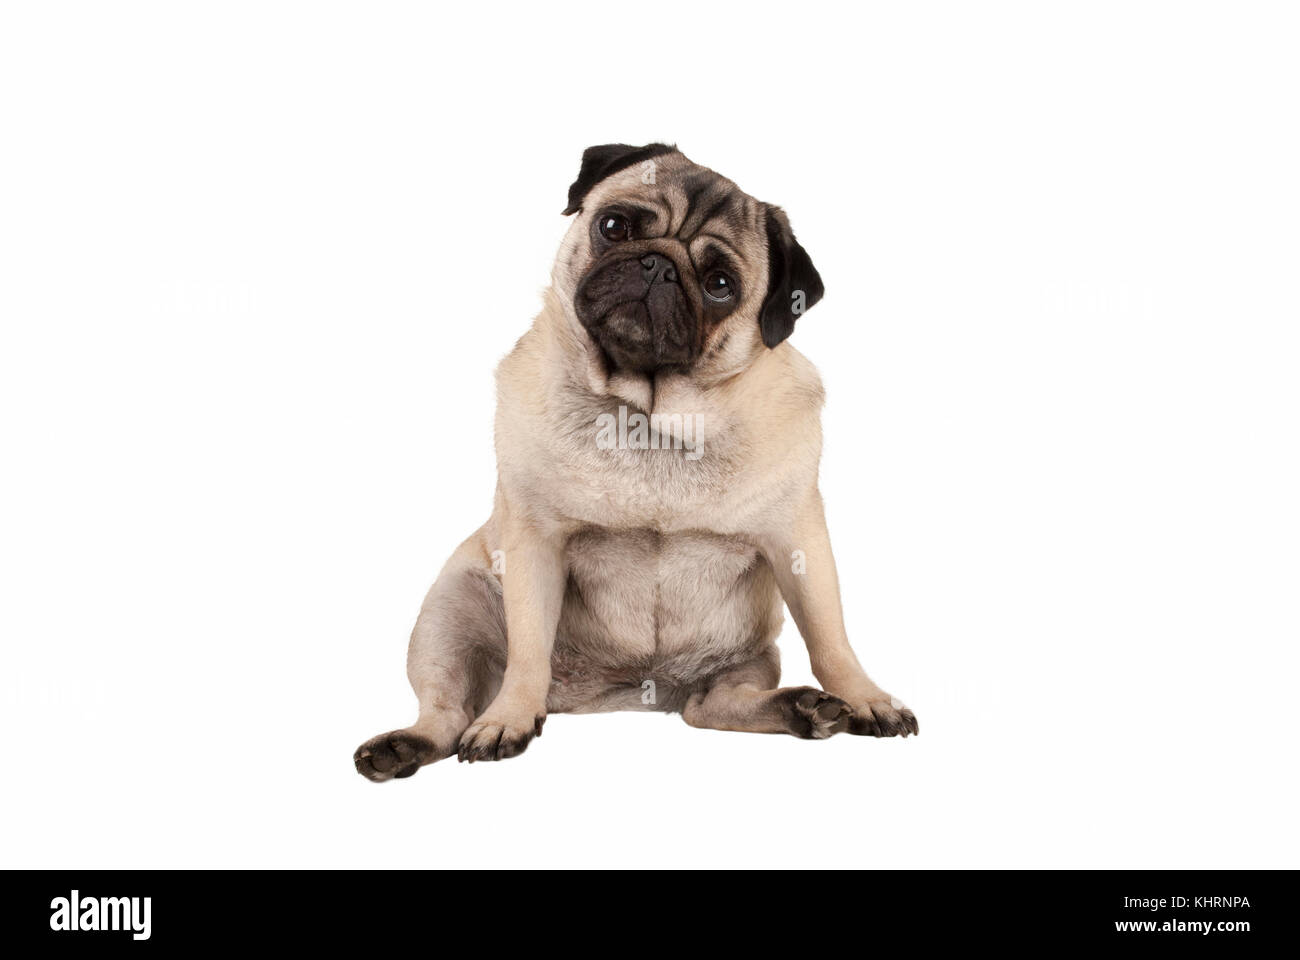 funny cute pug puppy dog, sitting down, looking amazed, isolated on white background - Stock Image